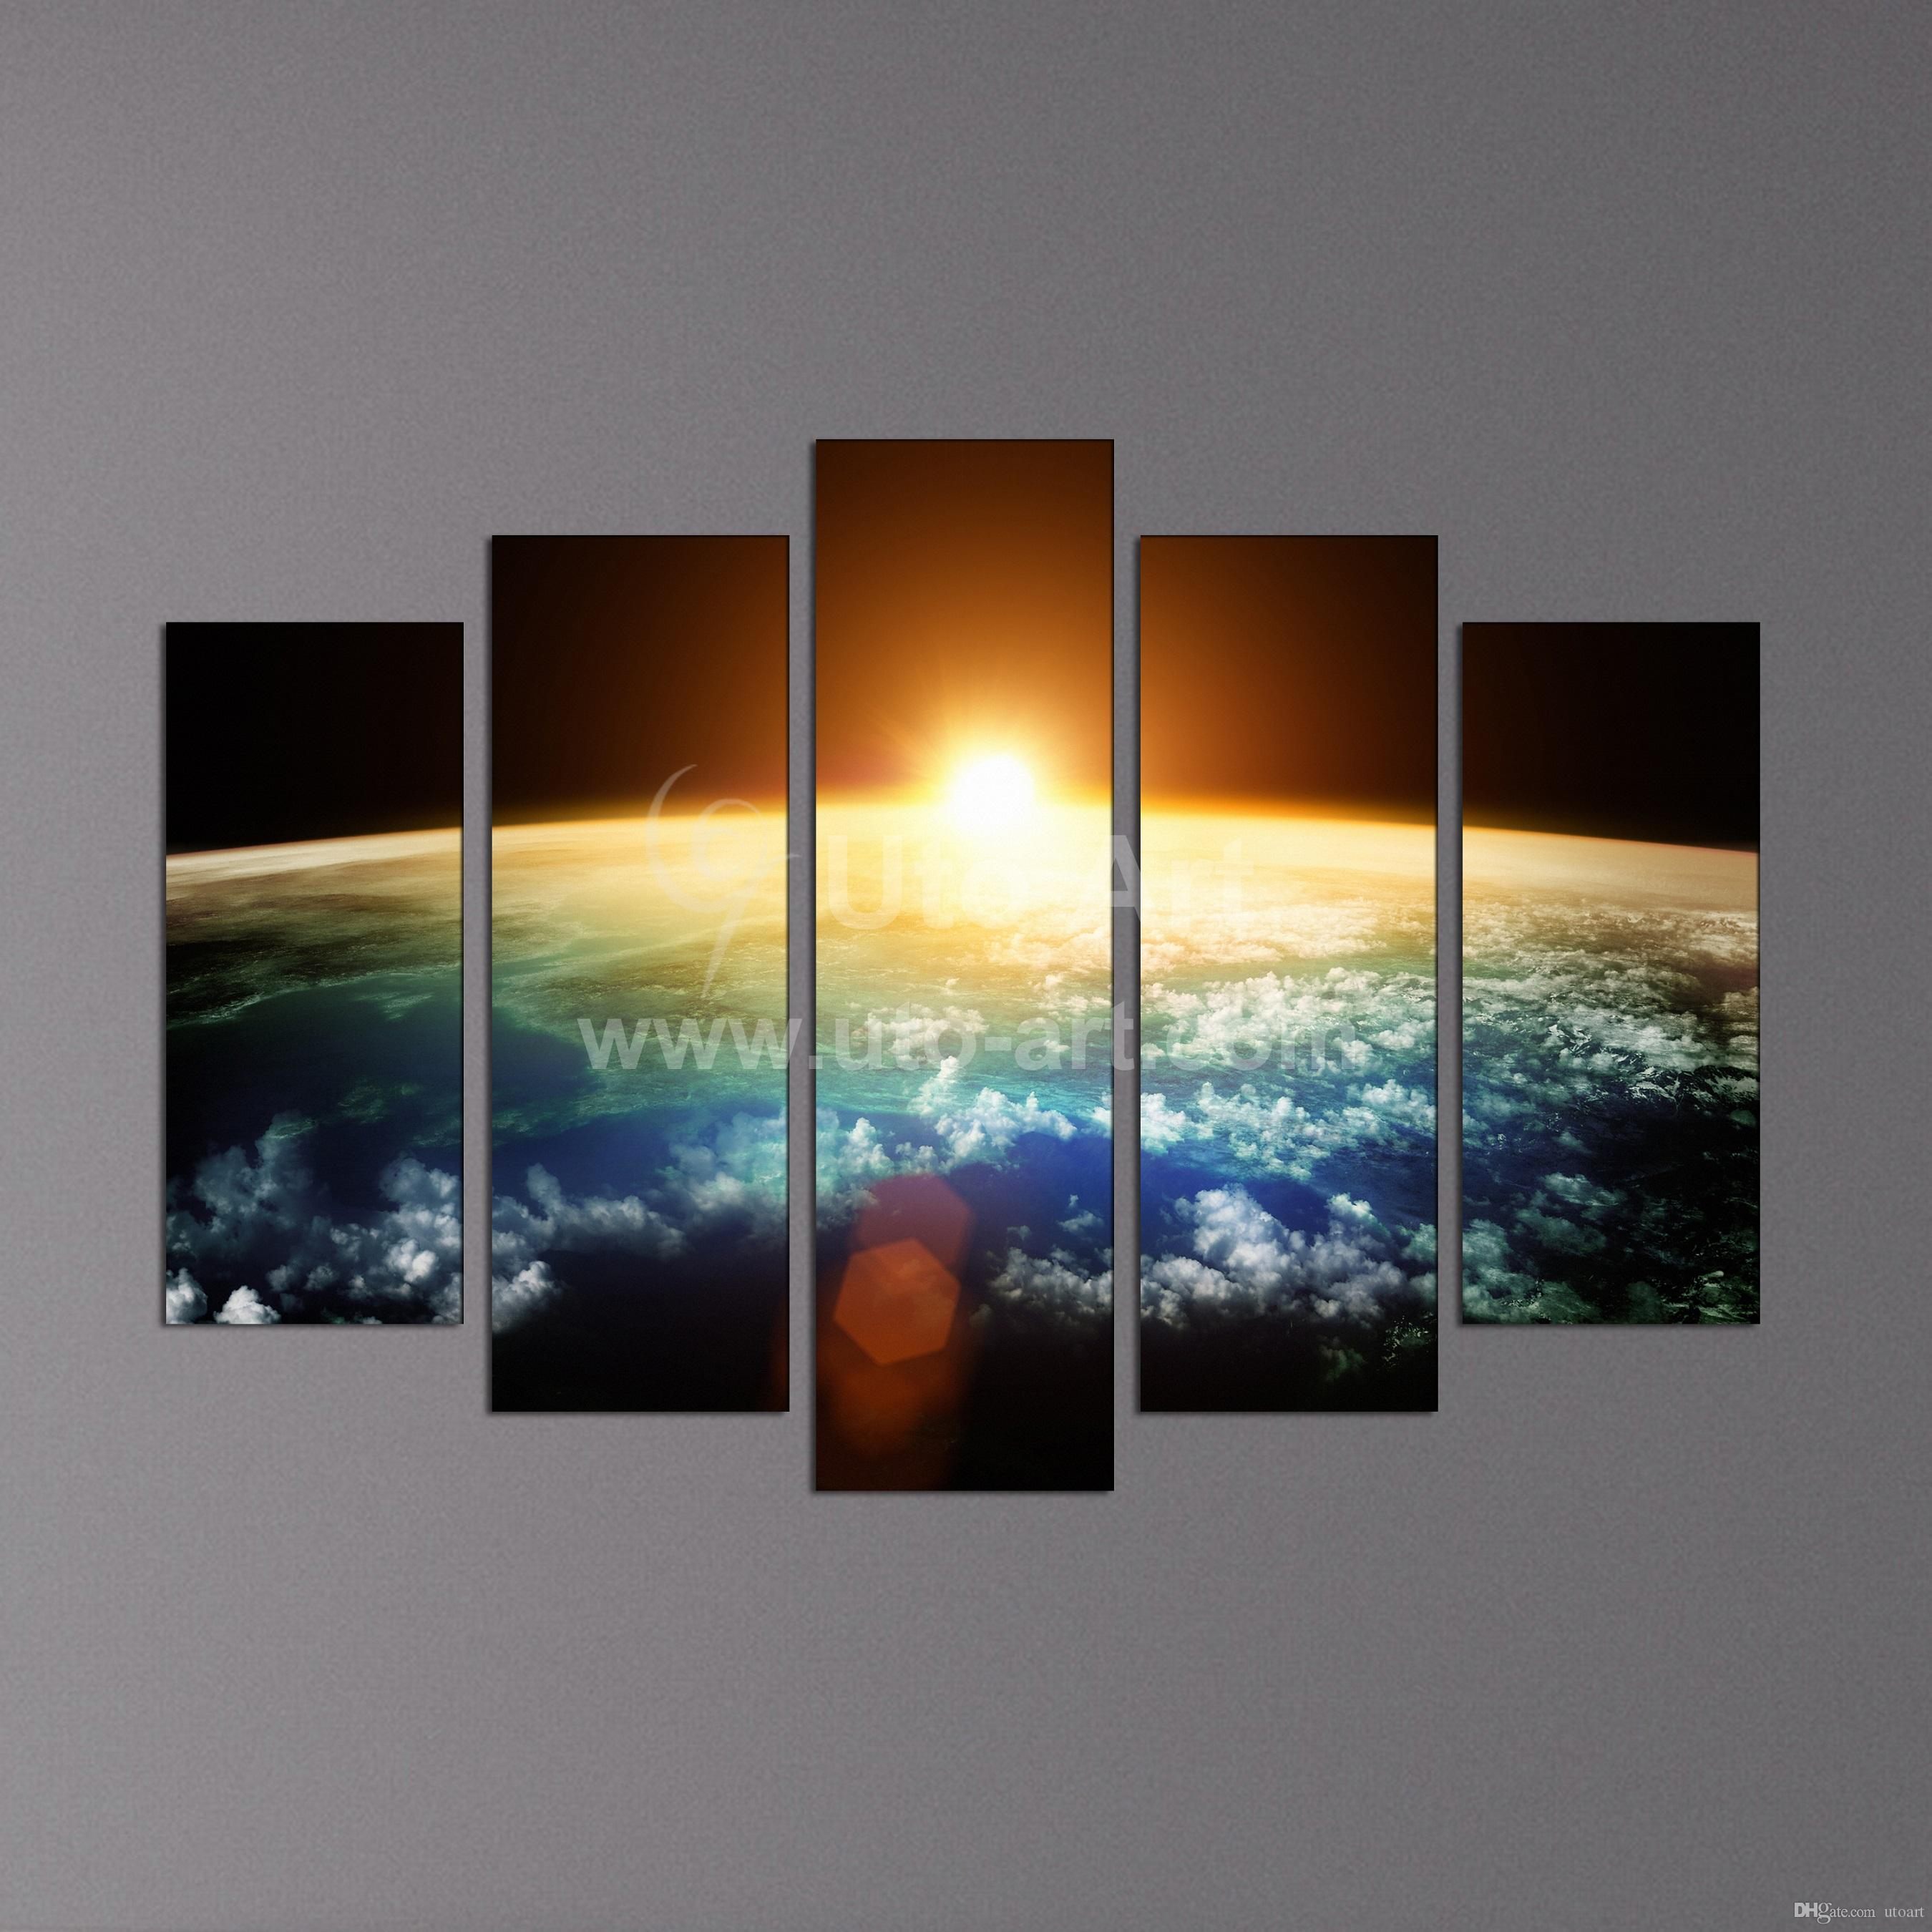 2018 Hot Sell Sunrise Modern Home Wall Decor Canvas Picture Art Hd Print  Painting Set Of 5 Each,Canvas Arts Painting From Utoart, $15.97 | Dhgate.Com